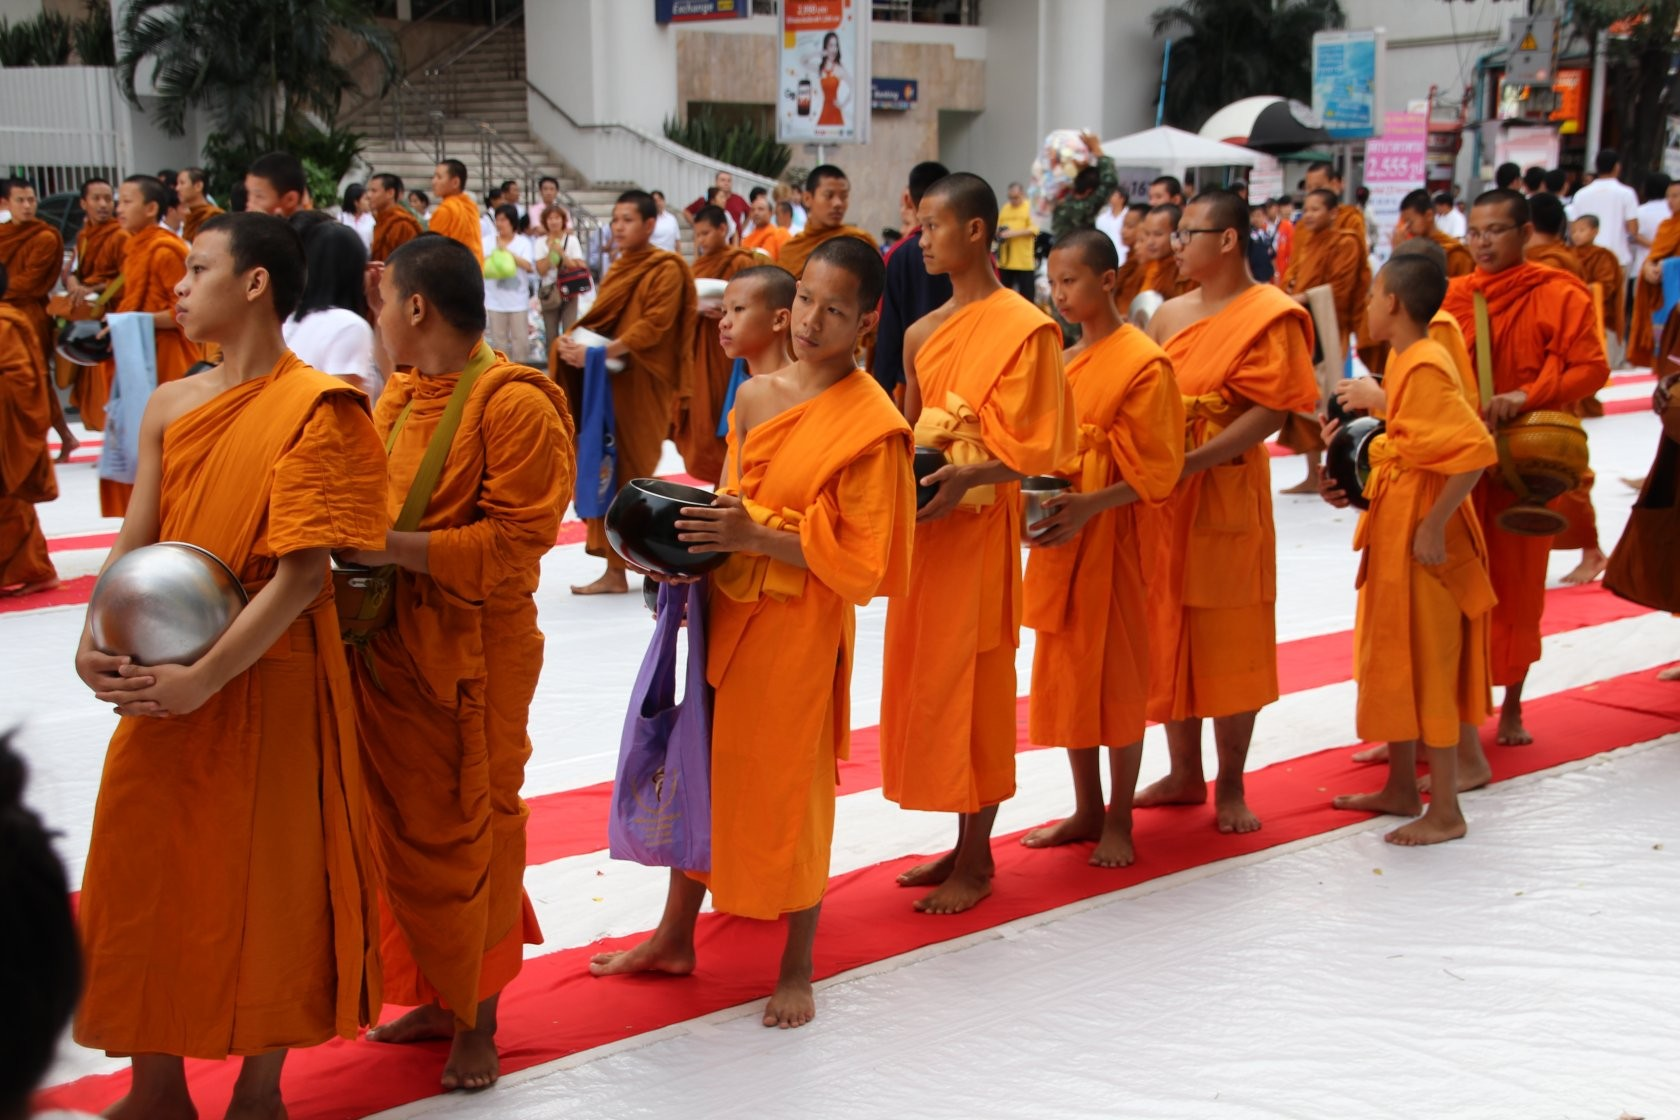 Bangkok - Mass Alms Giving in Thonglor / Sukhumvit Soi 55 XLIX